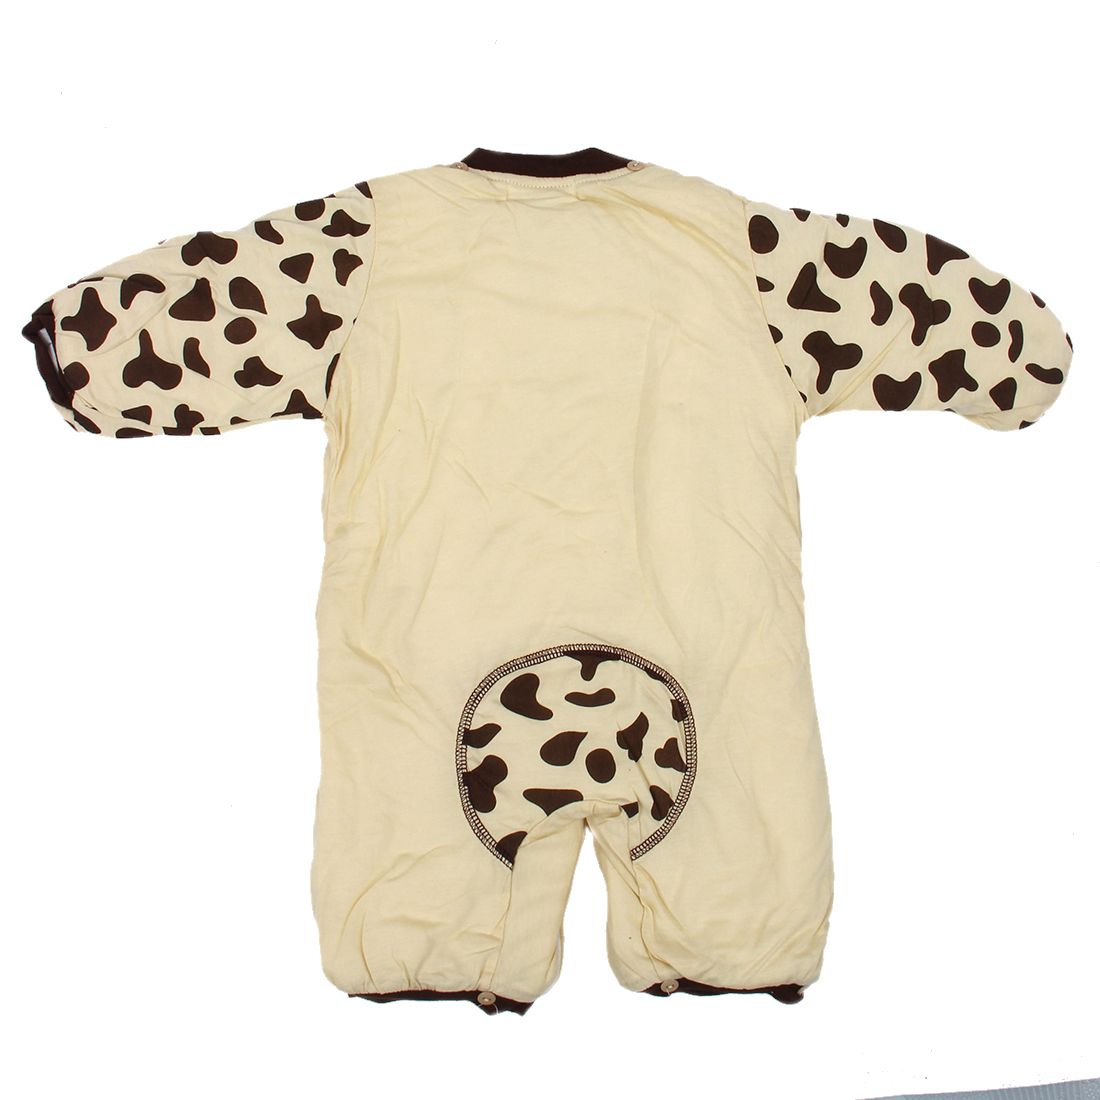 KEOL Best Sale new Autumn Winter Clothing sets Cartoon Animal Style Cotton-padded Baby boys Rompers Cows Warm Kids girls badys